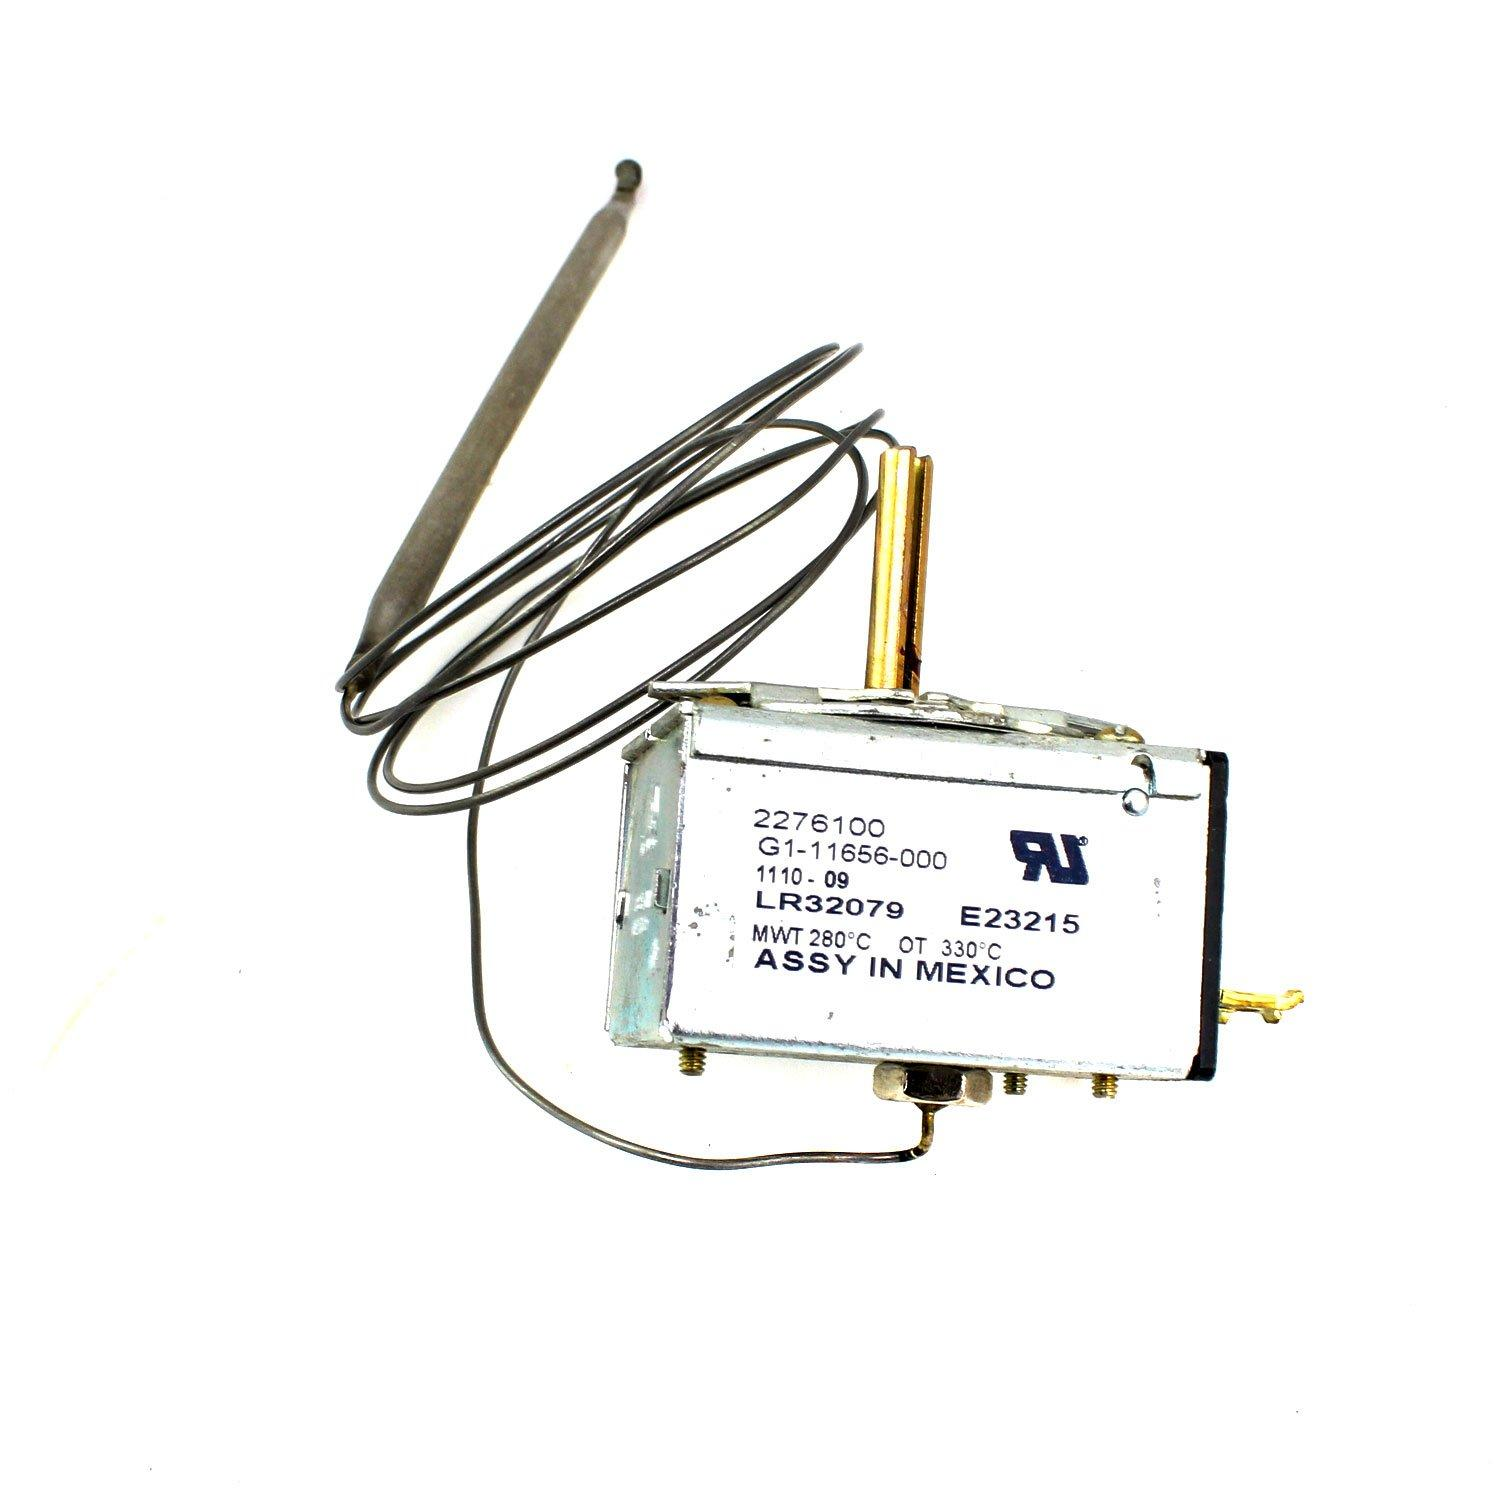 small resolution of cleveland old thermostat set ranco g1 11656 part ke55069 3 2 pole thermostat wiring diagram ranco thermostat wiring diagram g1